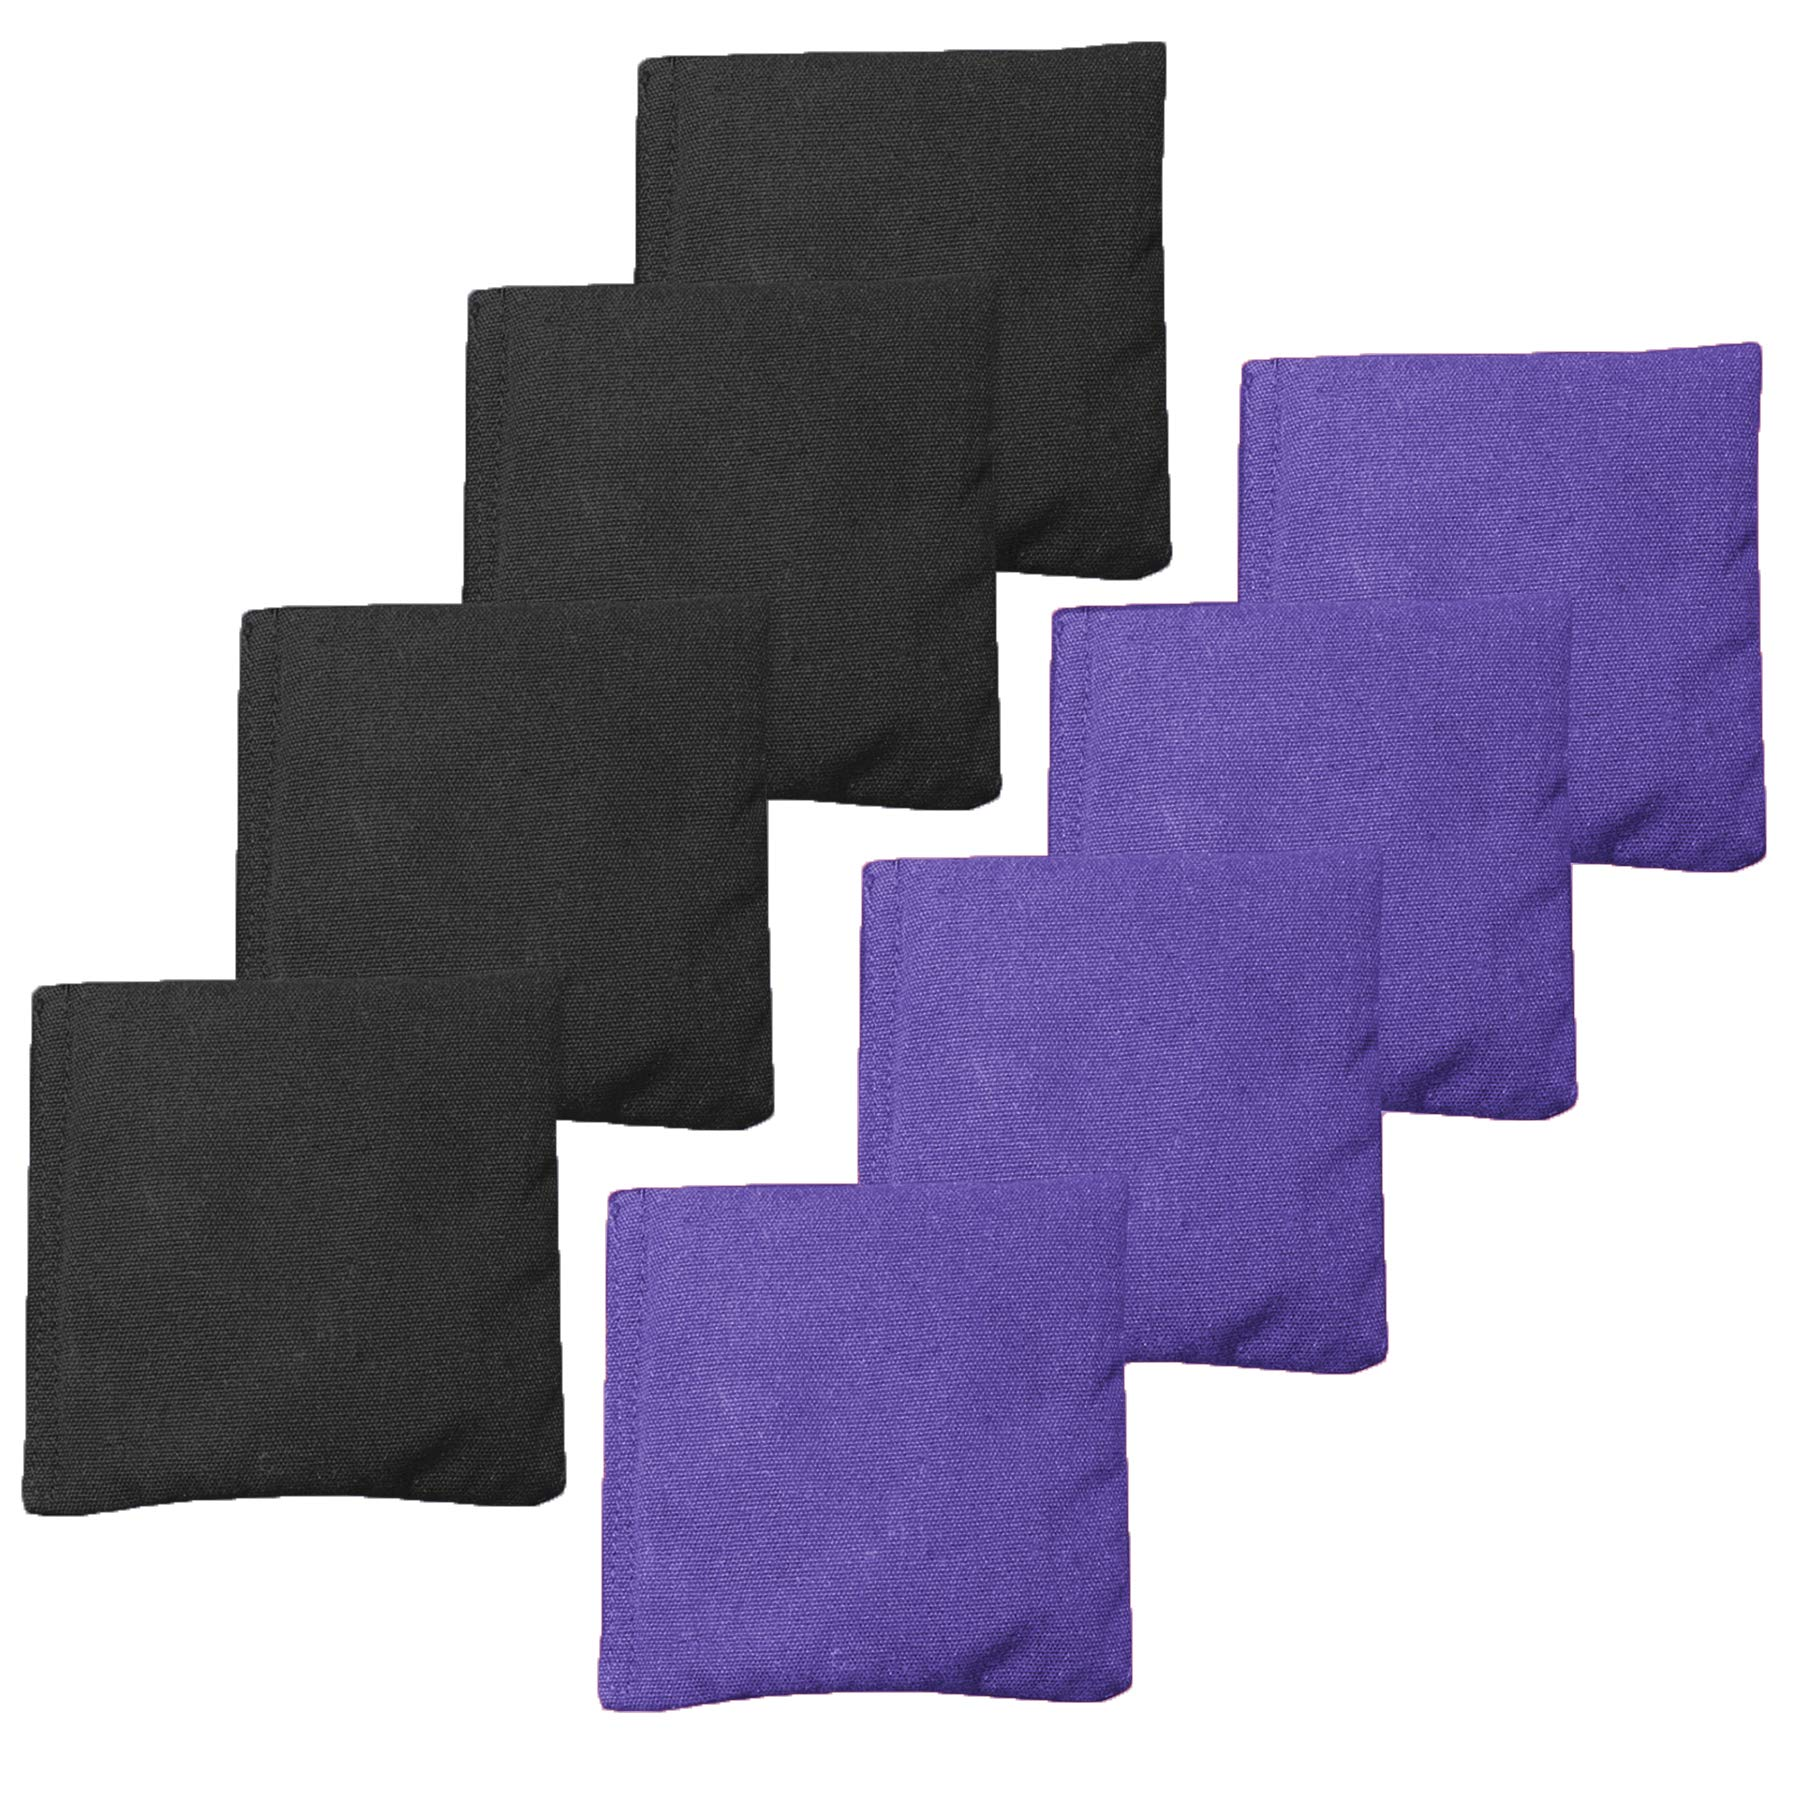 Weather Resistant Cornhole Bean Bags Set of 8 - Regulation Size & Weight - Purple & Black by Play Platoon